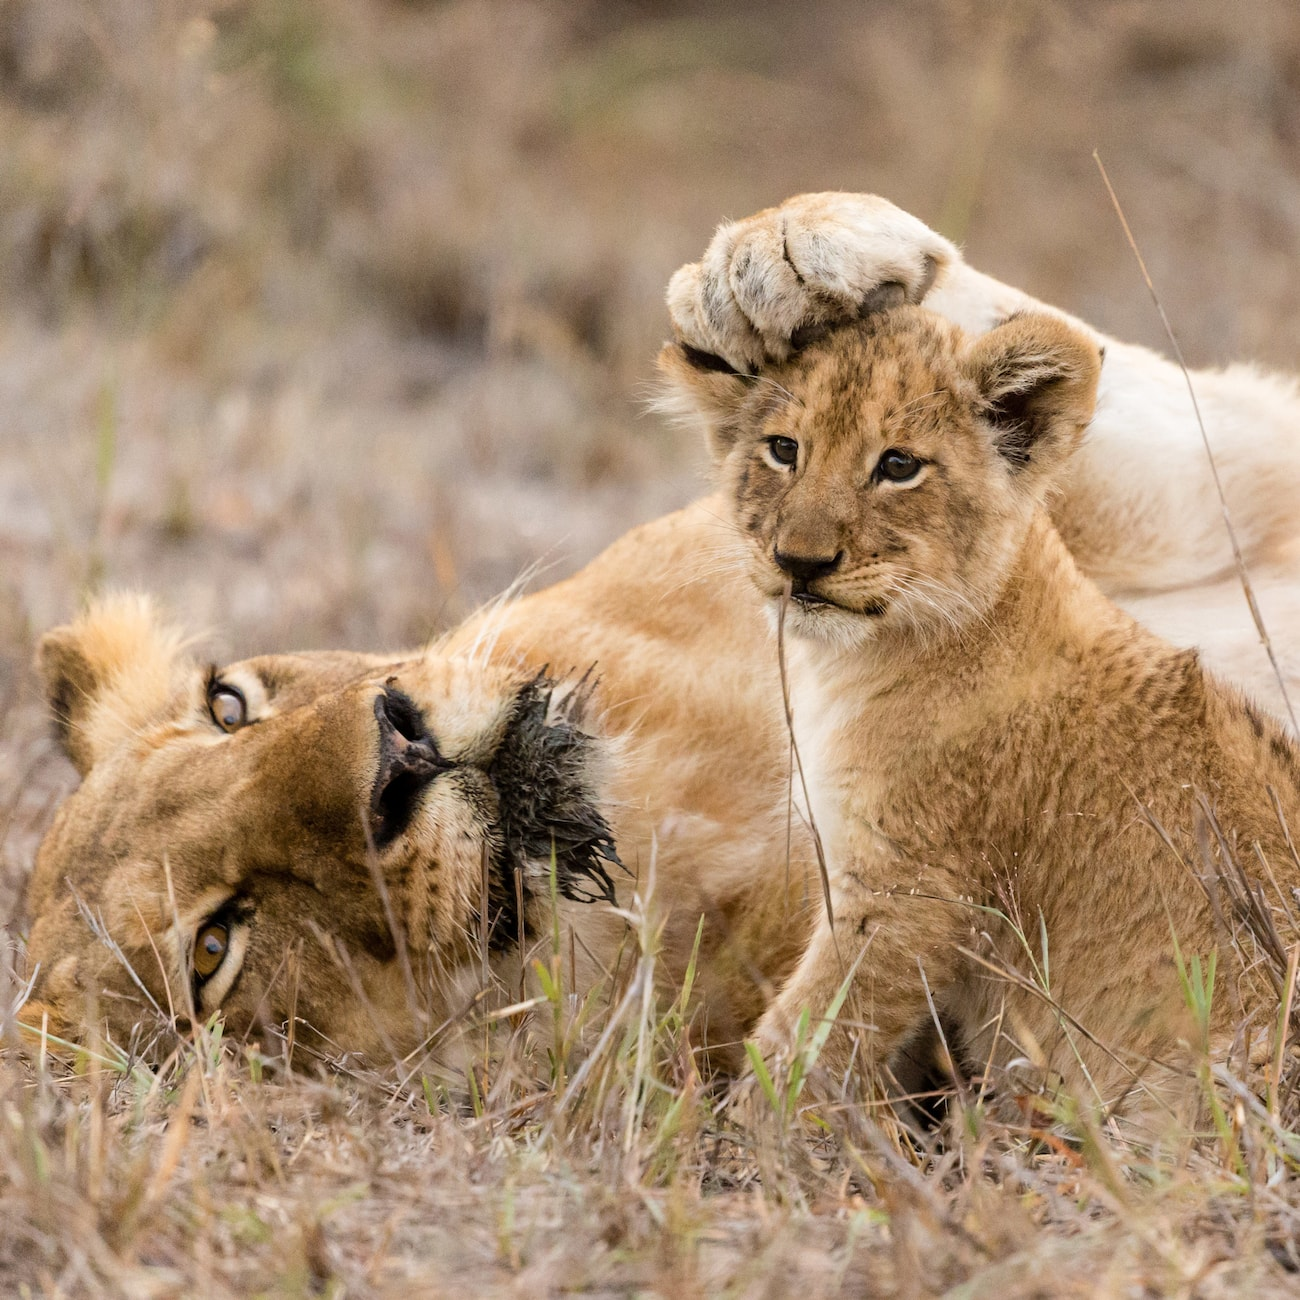 A lioness and her cub laze in the South African savanna grasslands